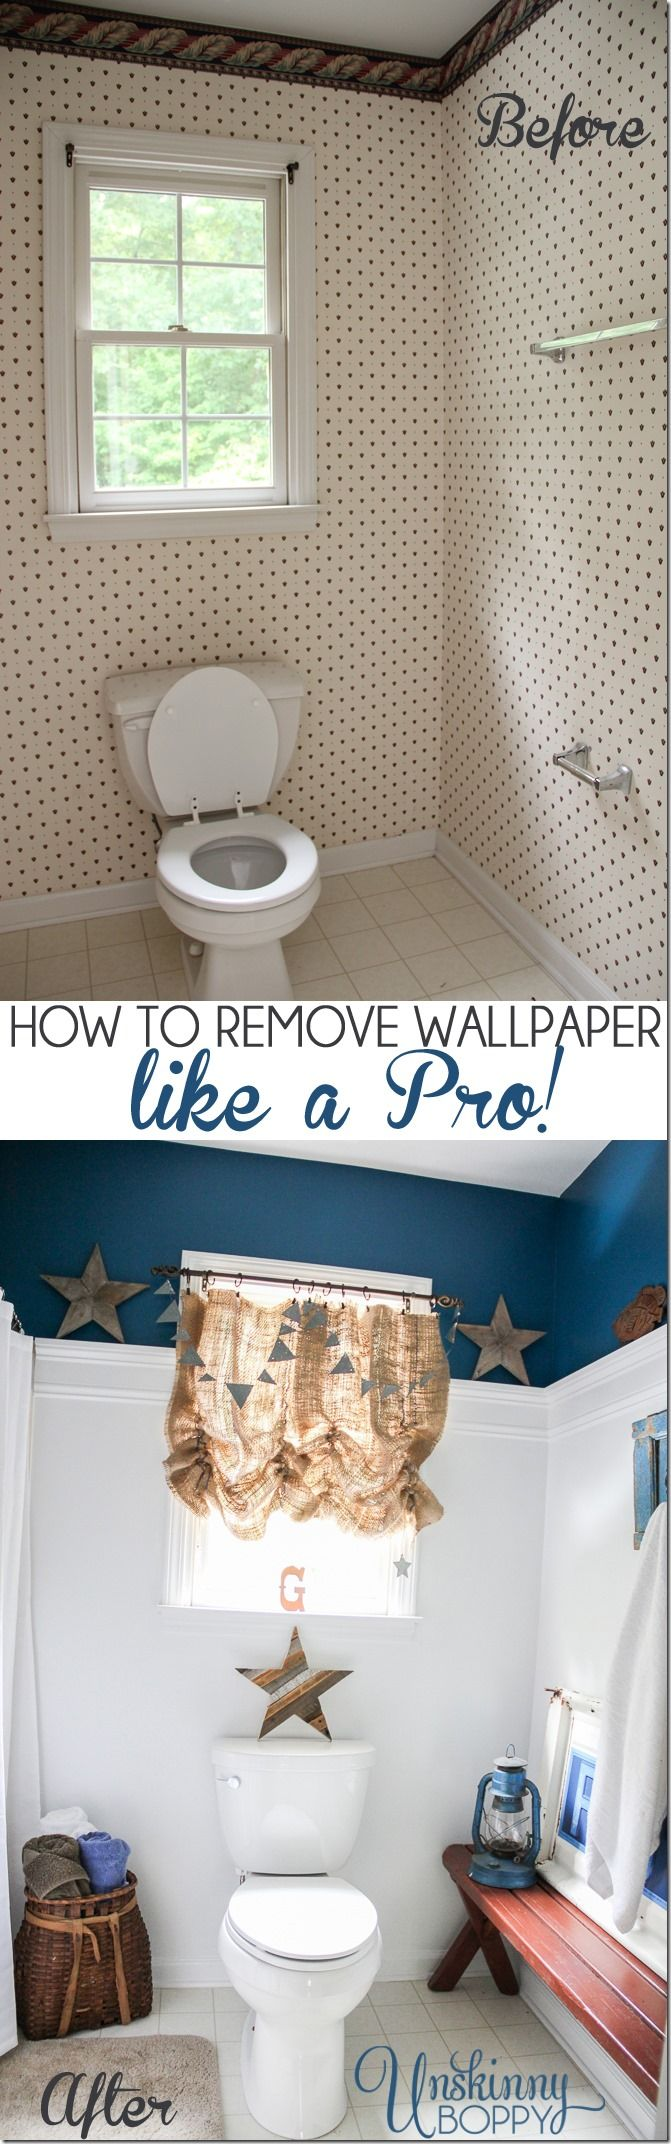 How to remove wallpaper paste from sheetrock - Tips For Removing Stubborn Wallpaper And A Super Cute Makeover In This Rustic Boys Bathroom